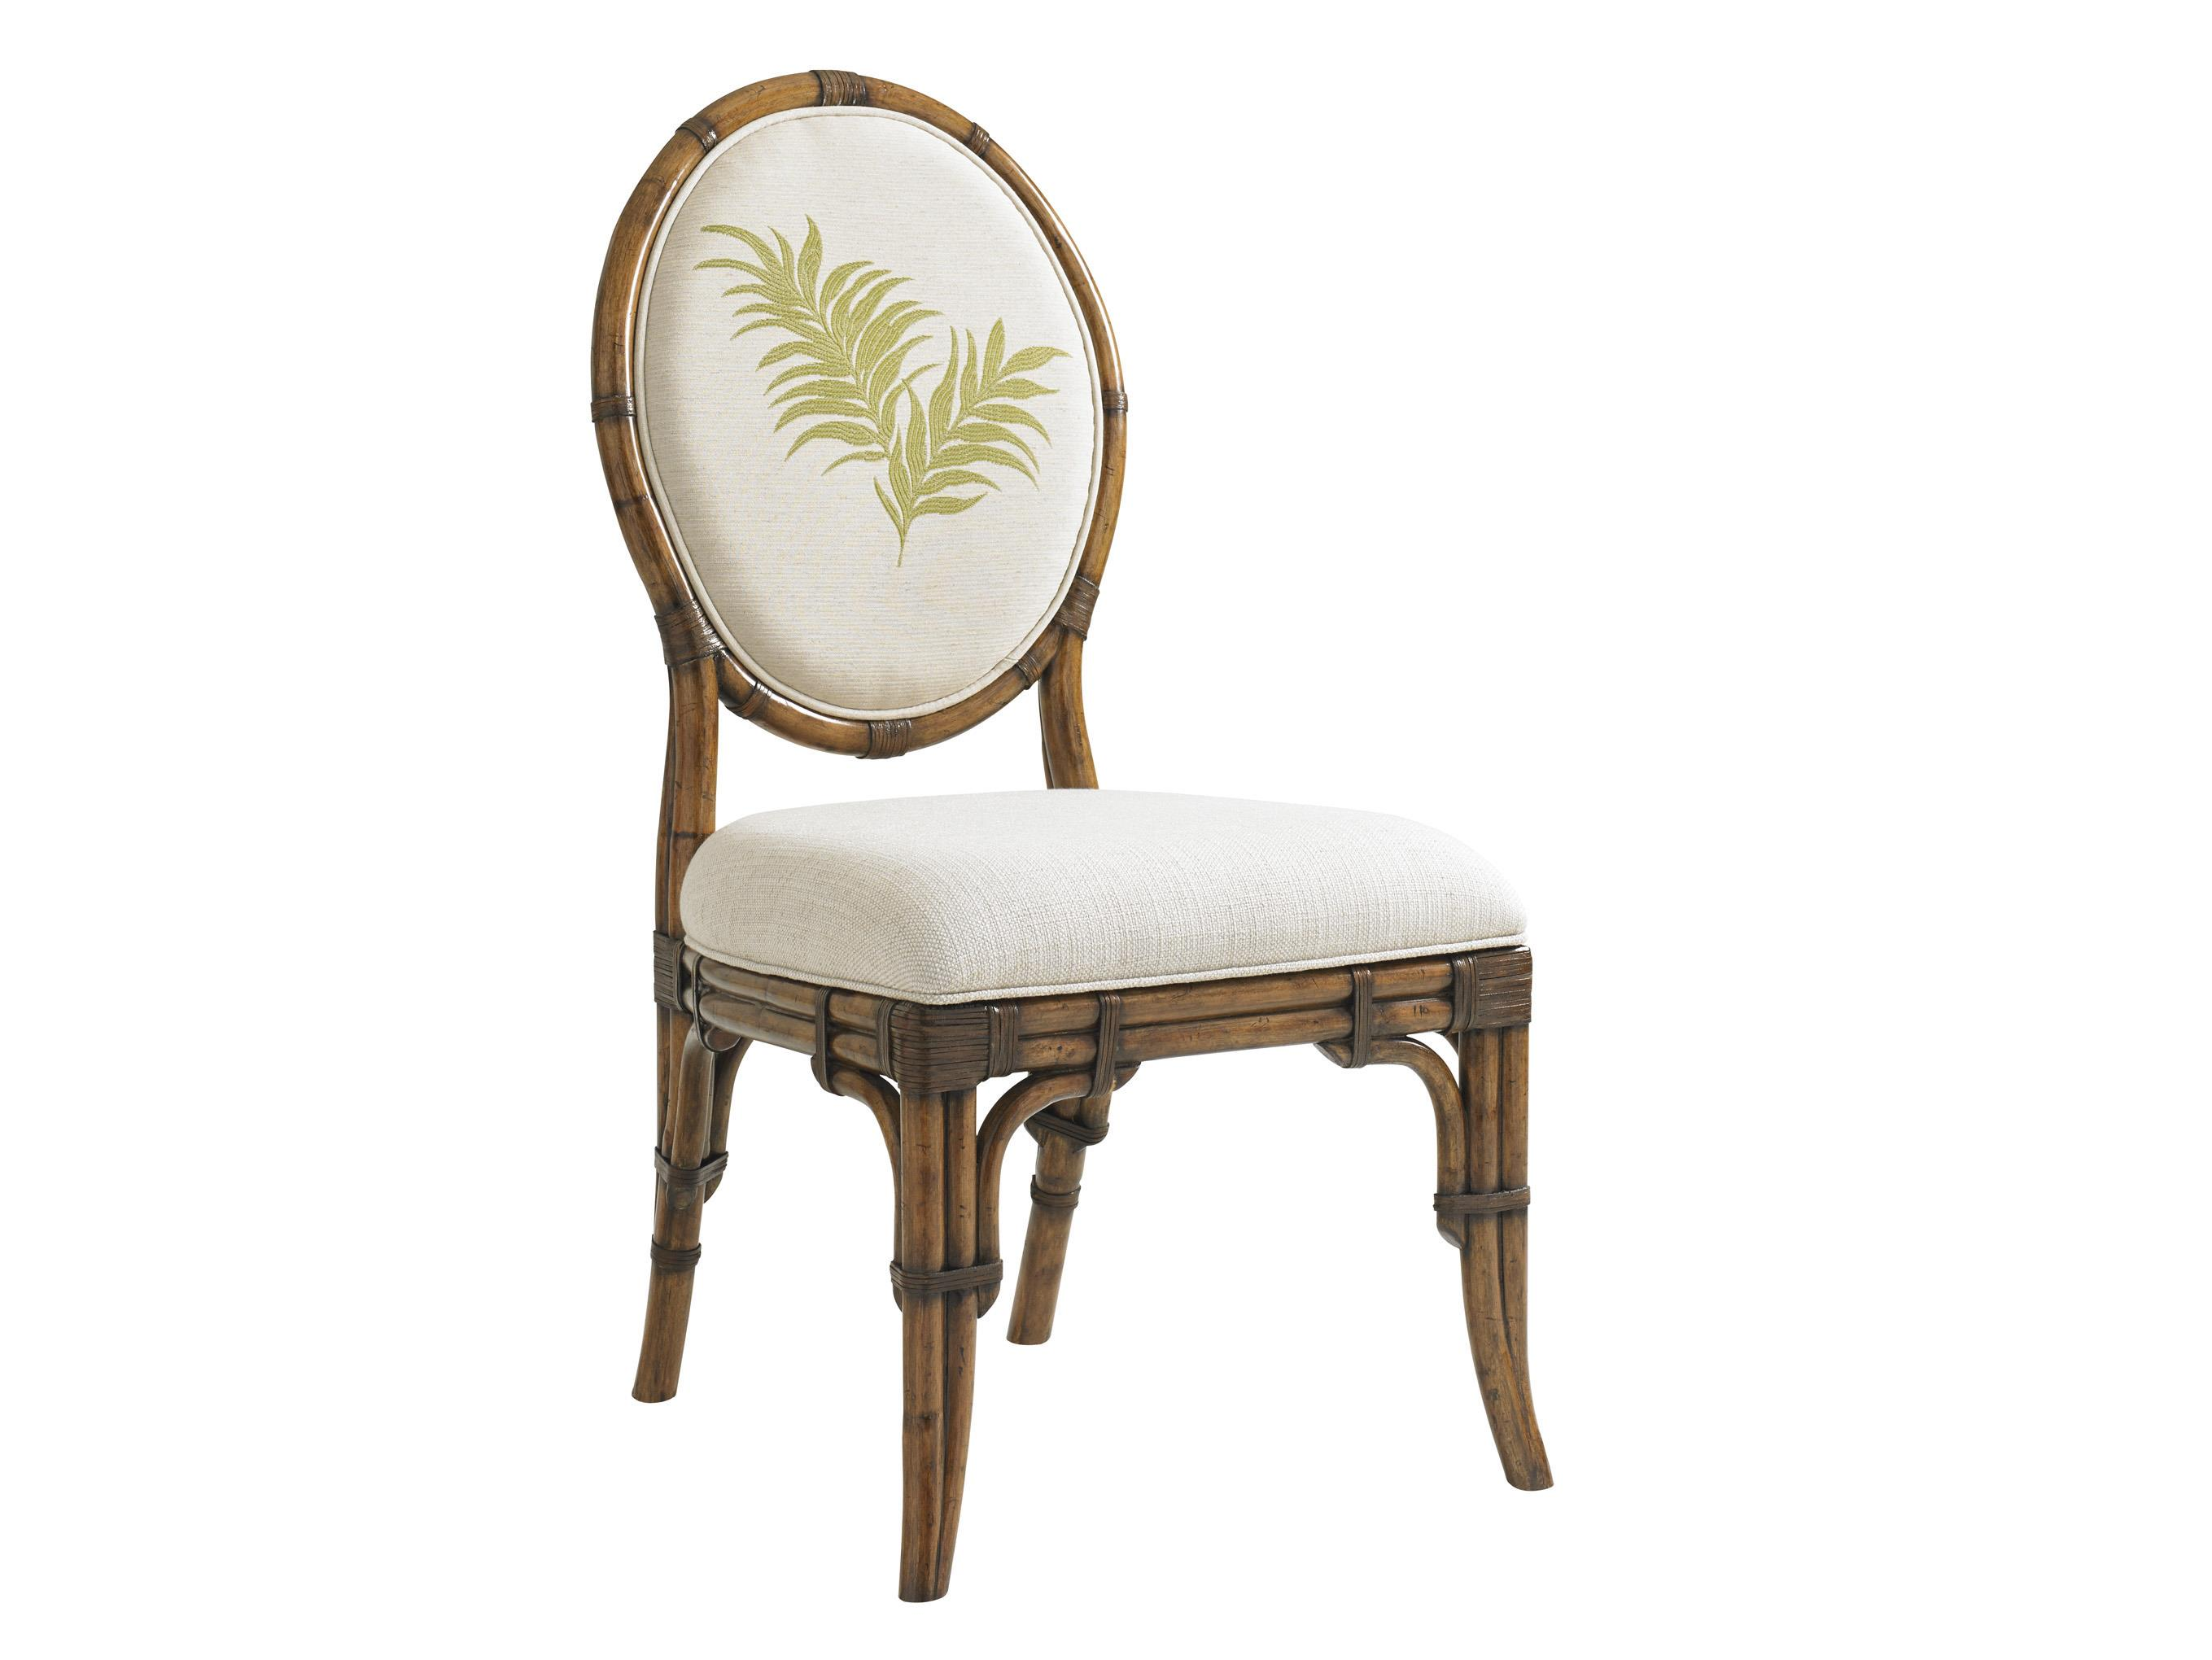 Bali Hai Dining Side Chair by Tommy Bahama Home at HomeWorld Furniture